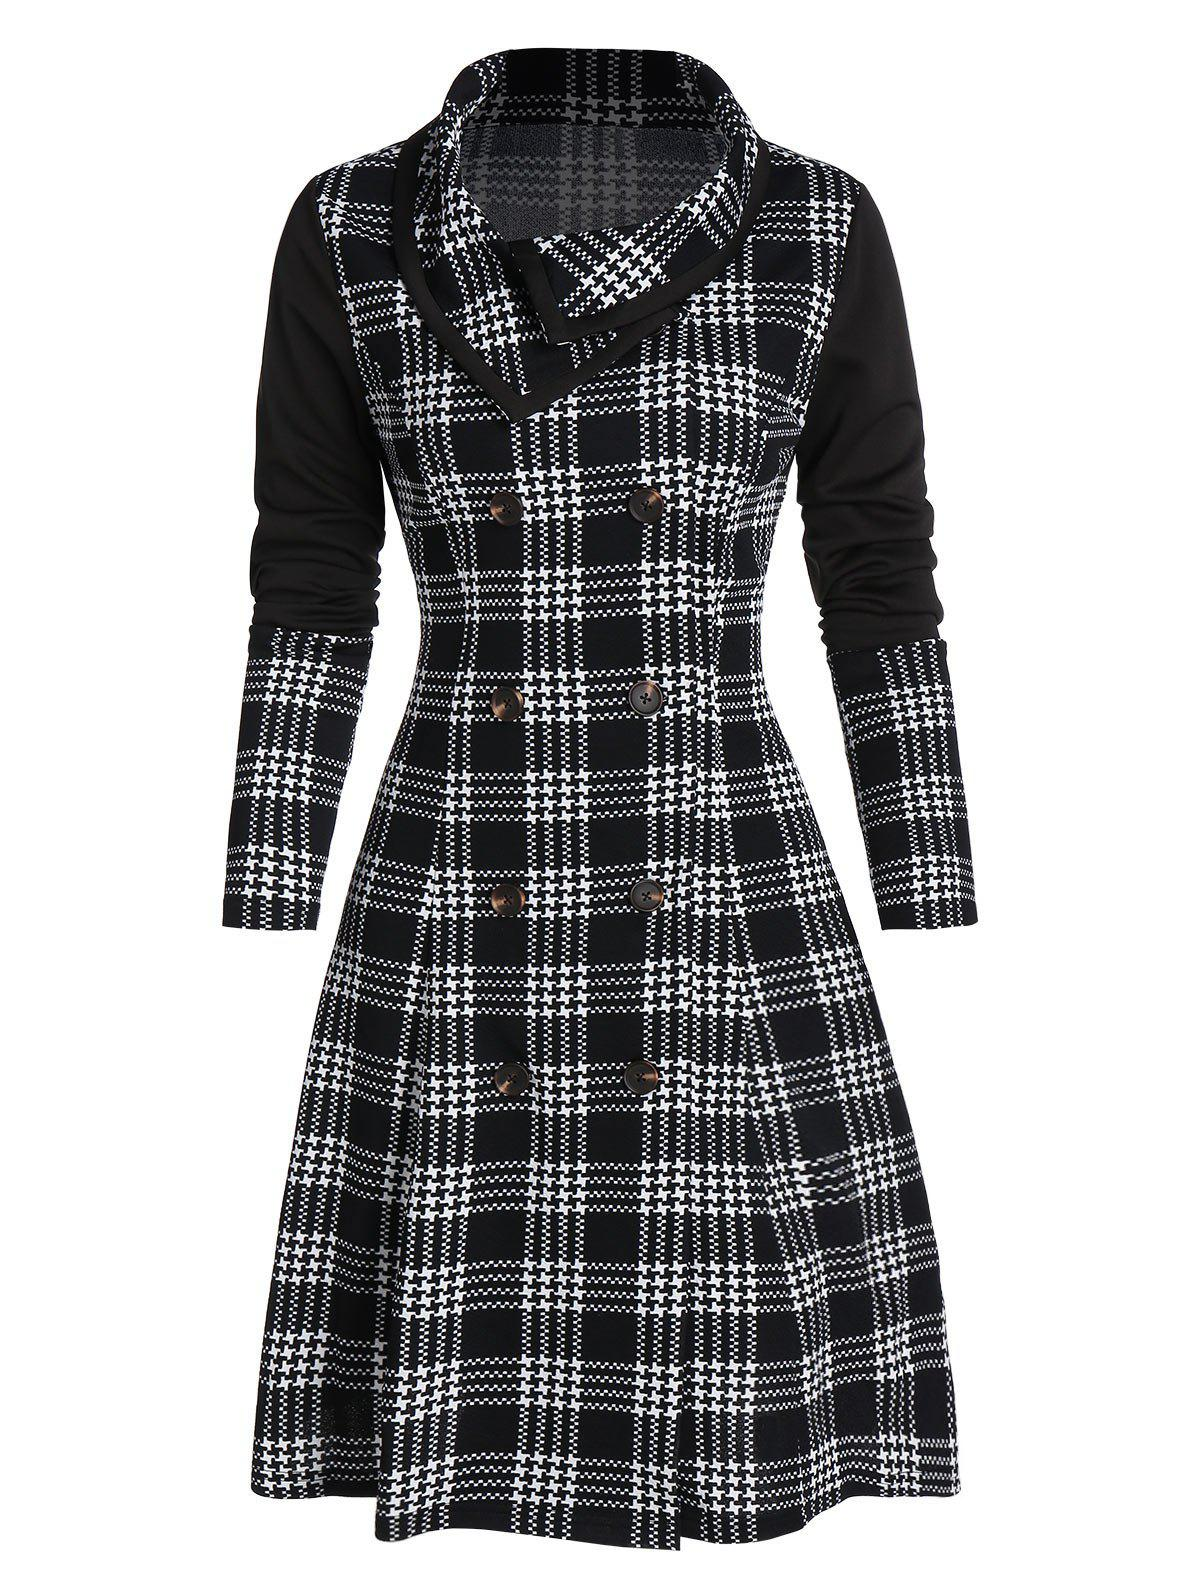 Chic Double Breasted Houndstooth Plaid Print Skirted Coat